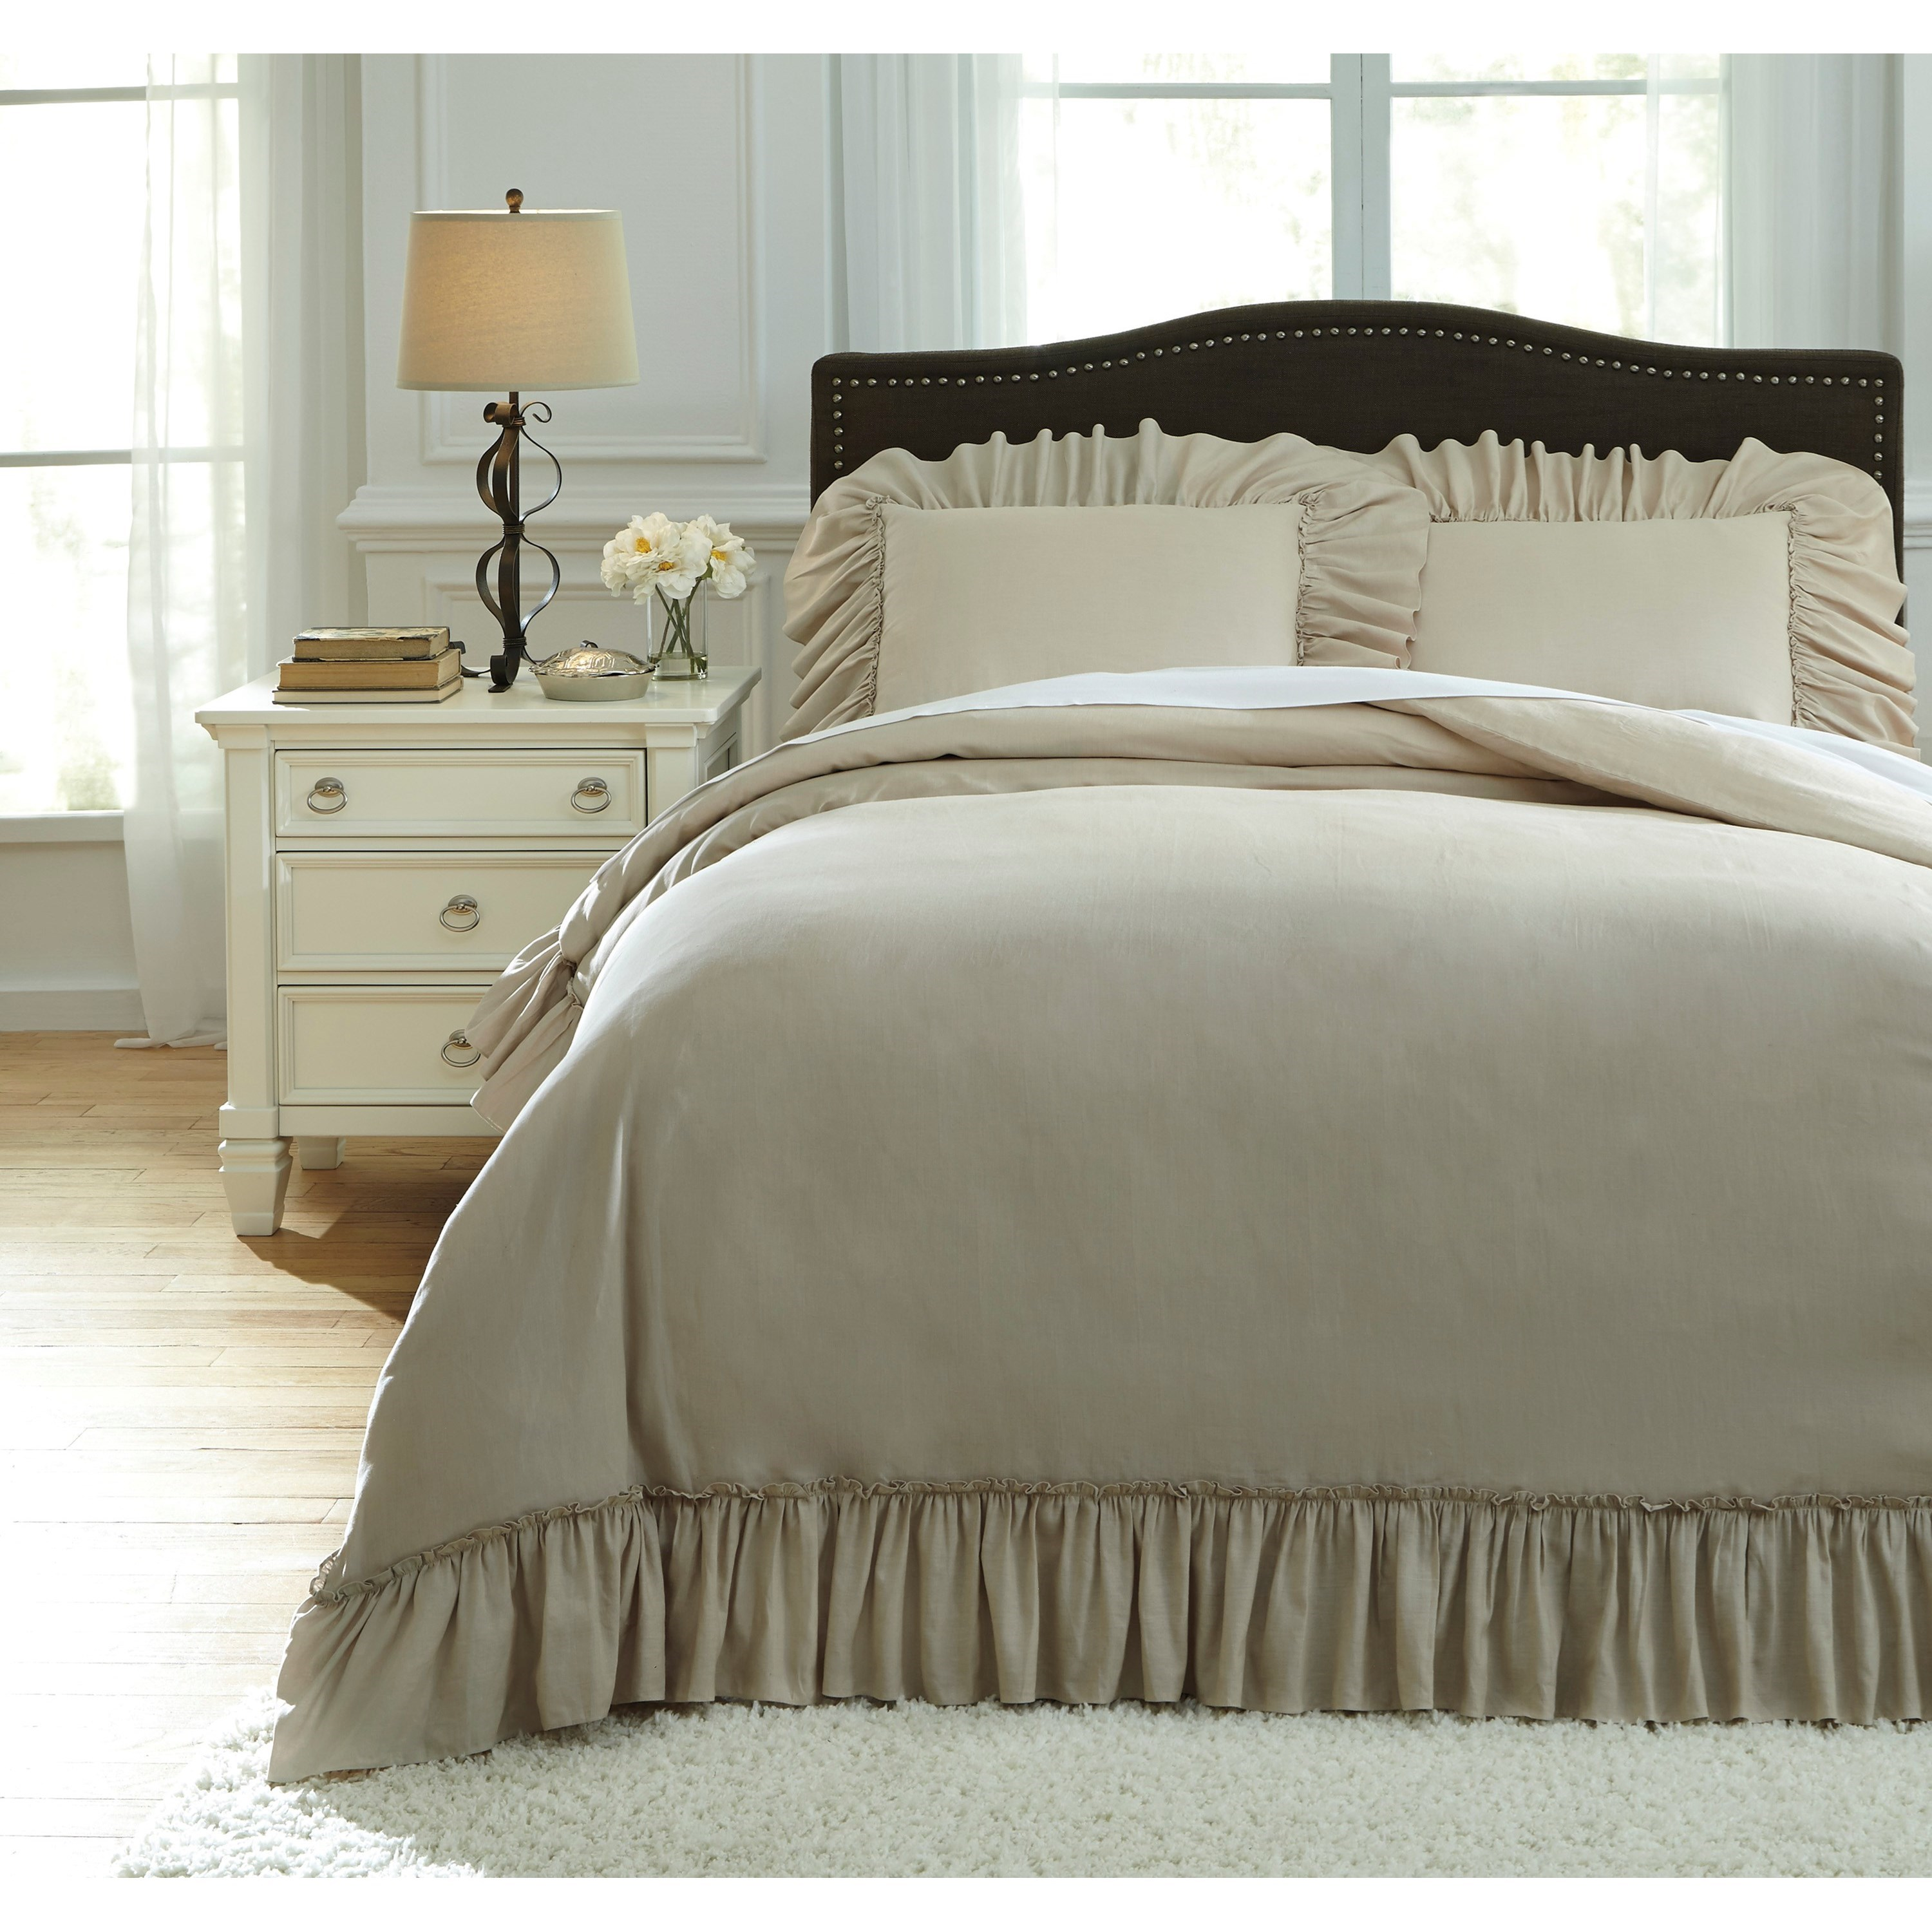 Signature Design by Ashley Bedding Sets Queen Clarksdale Natural Duvet Covet Set - Item Number: Q732003Q